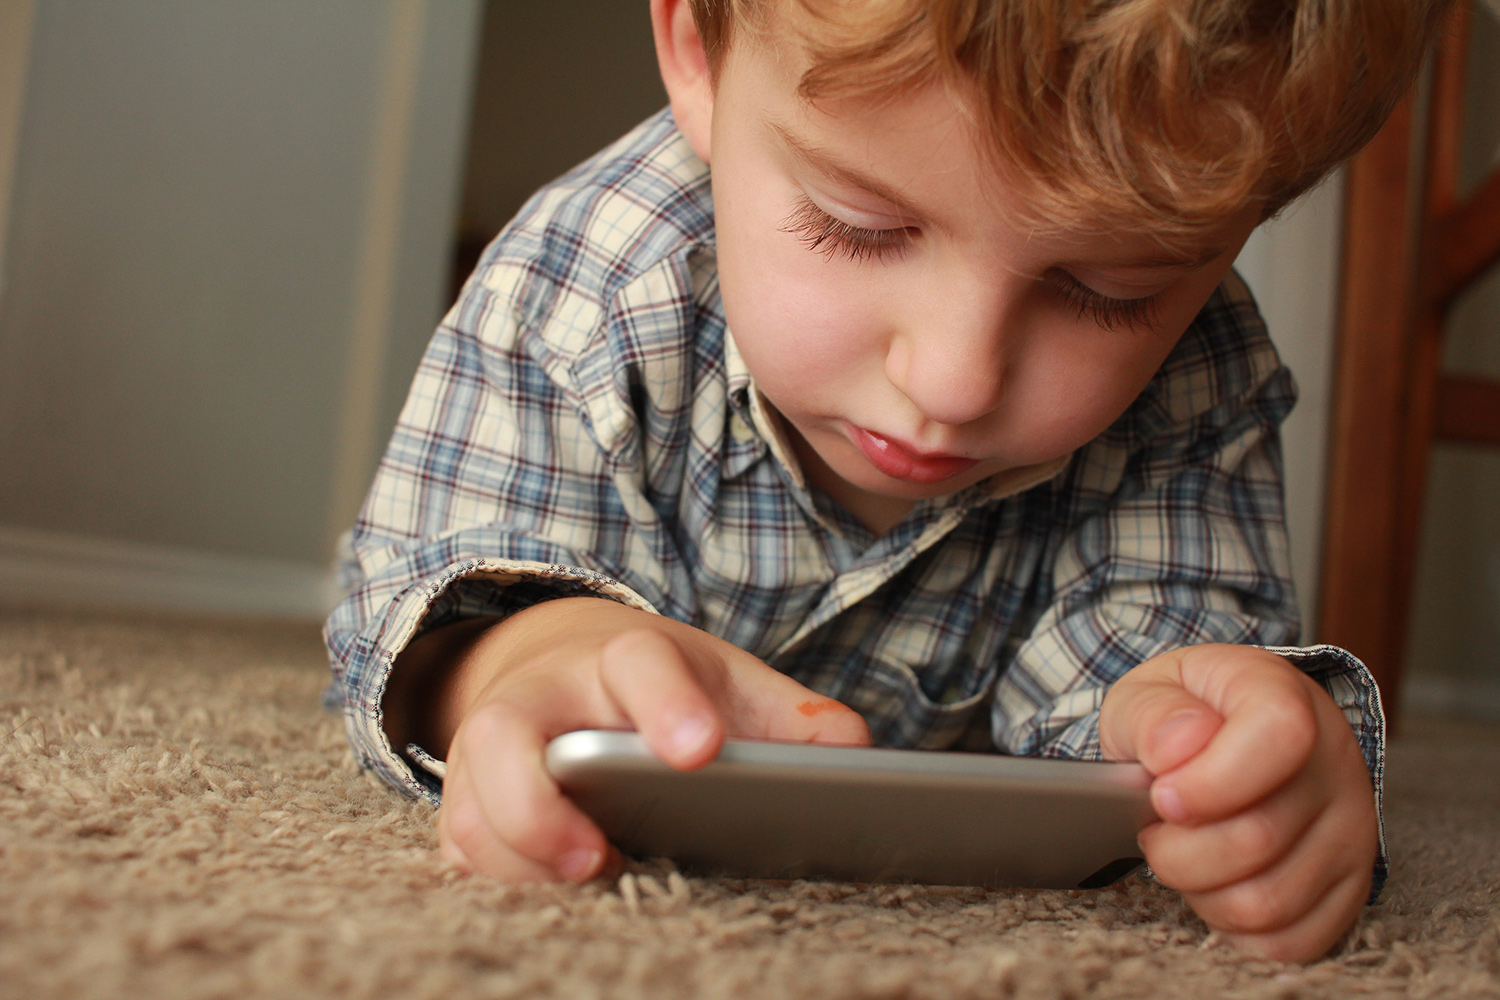 Messenger Kids: Is This Helpful or Harmful to Our Kids?